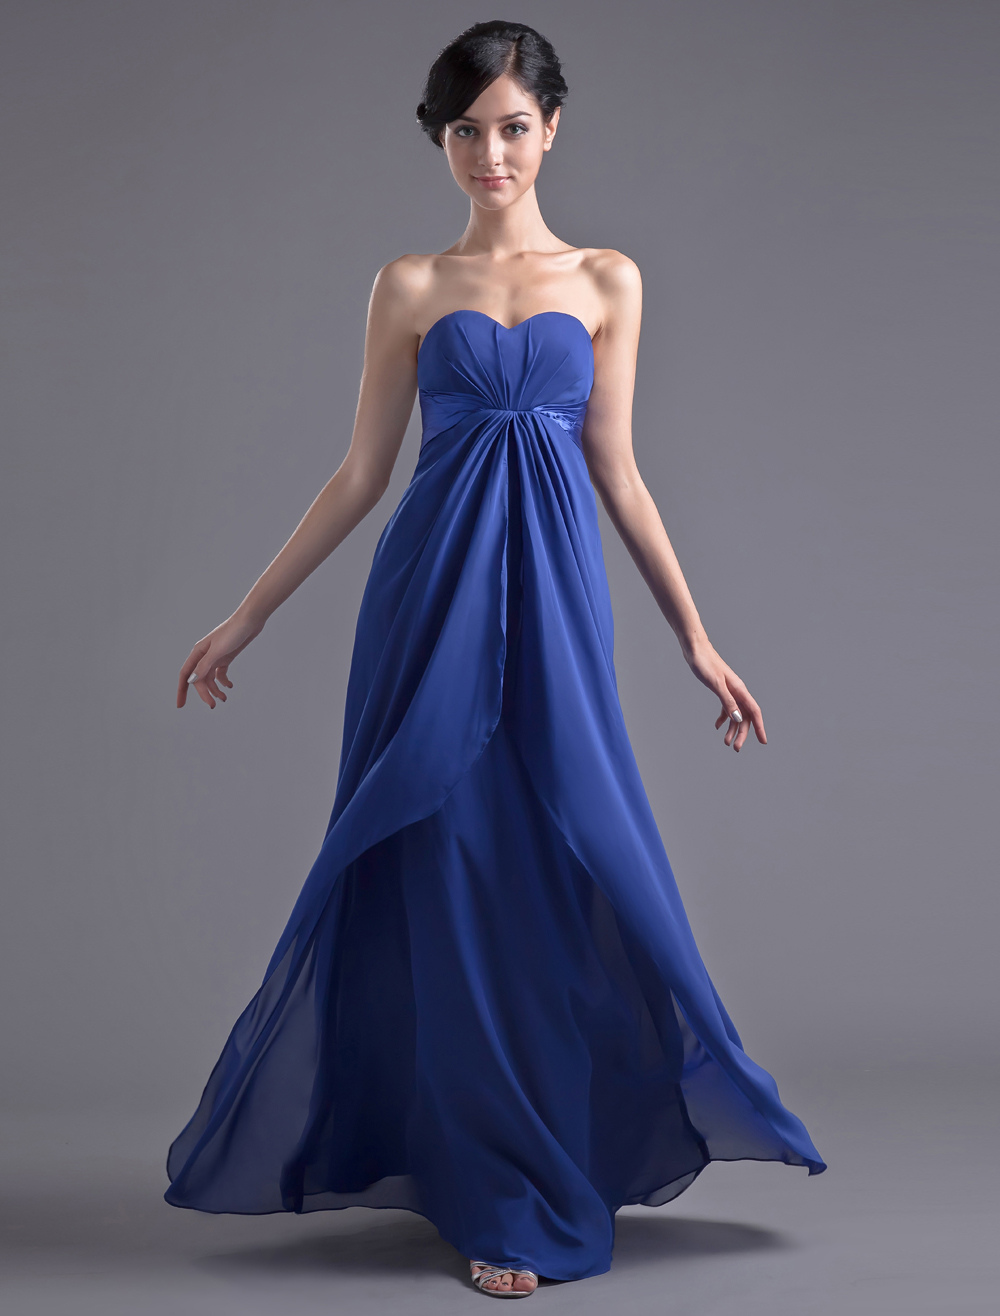 Blue Bridesmaid Dress Floor-Length Strapless Ruched Sheath Chiffon Dress